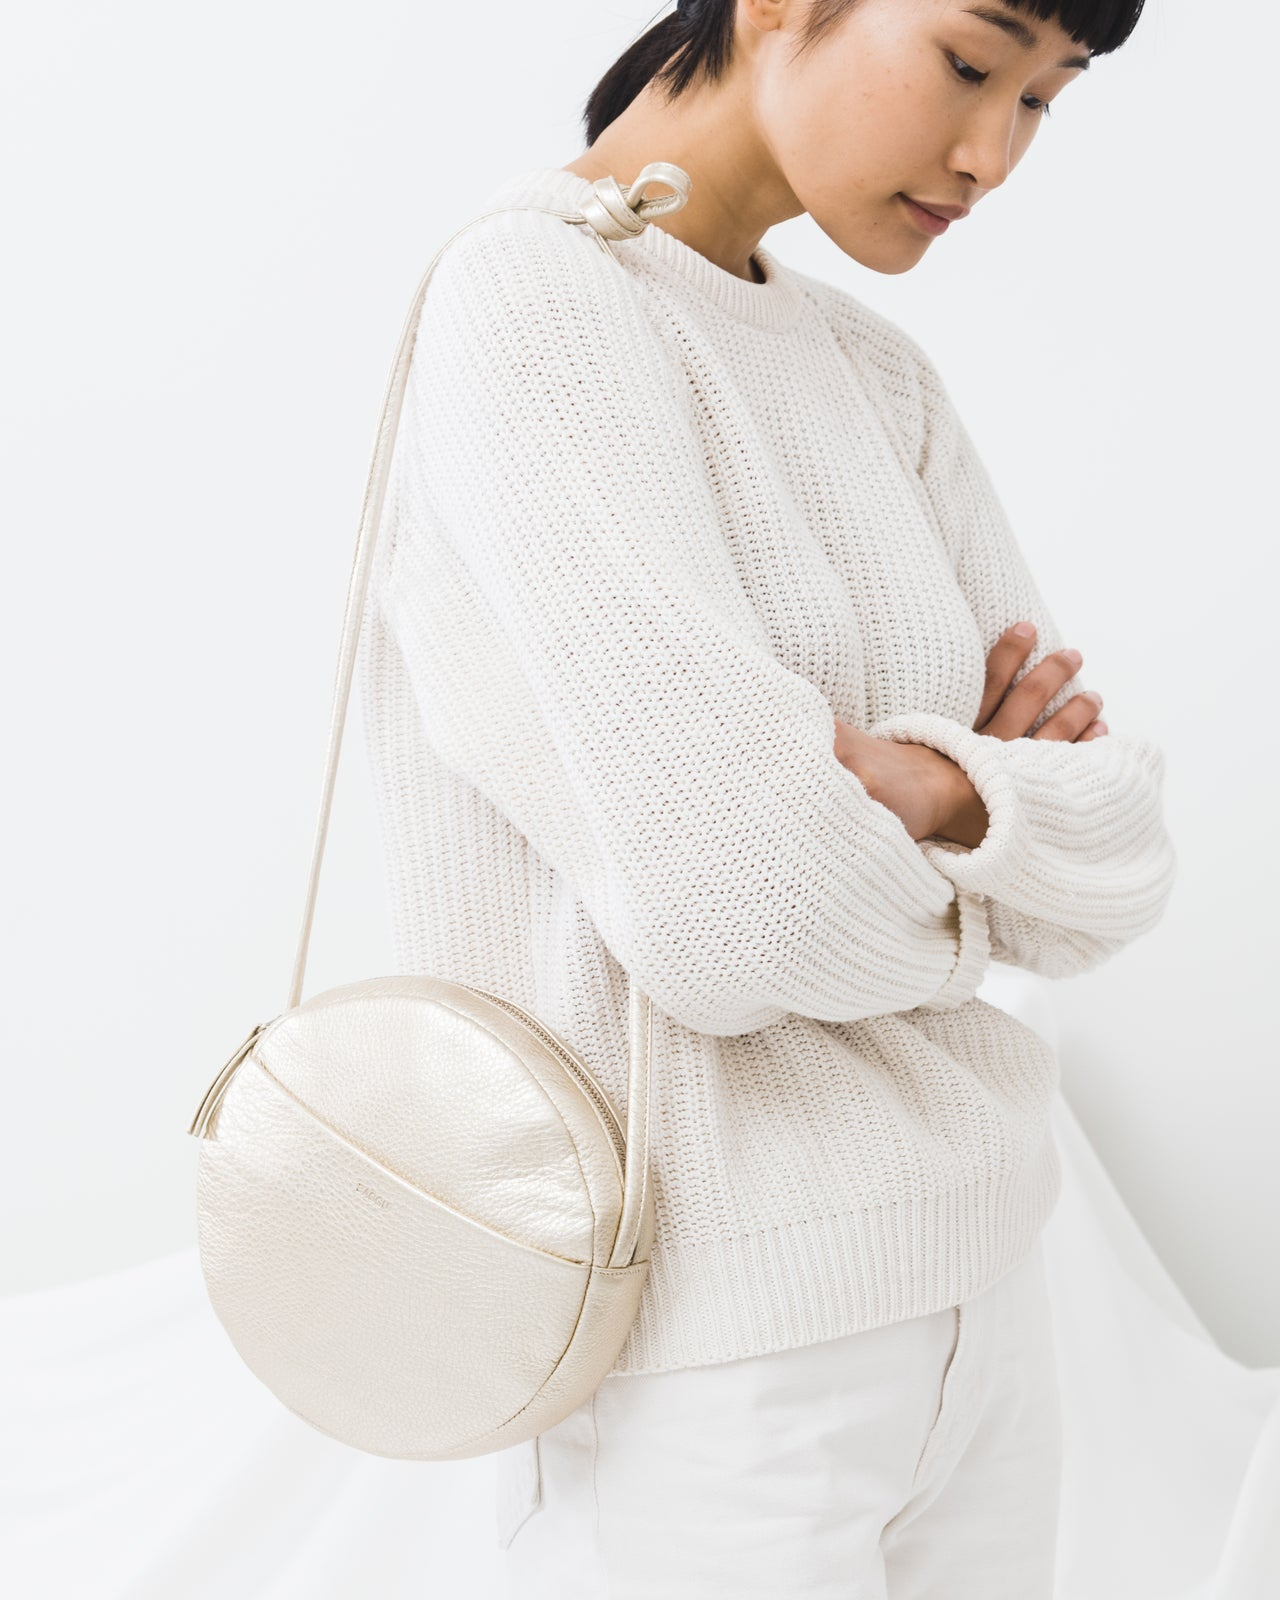 Soft Circle Purse - Platinum